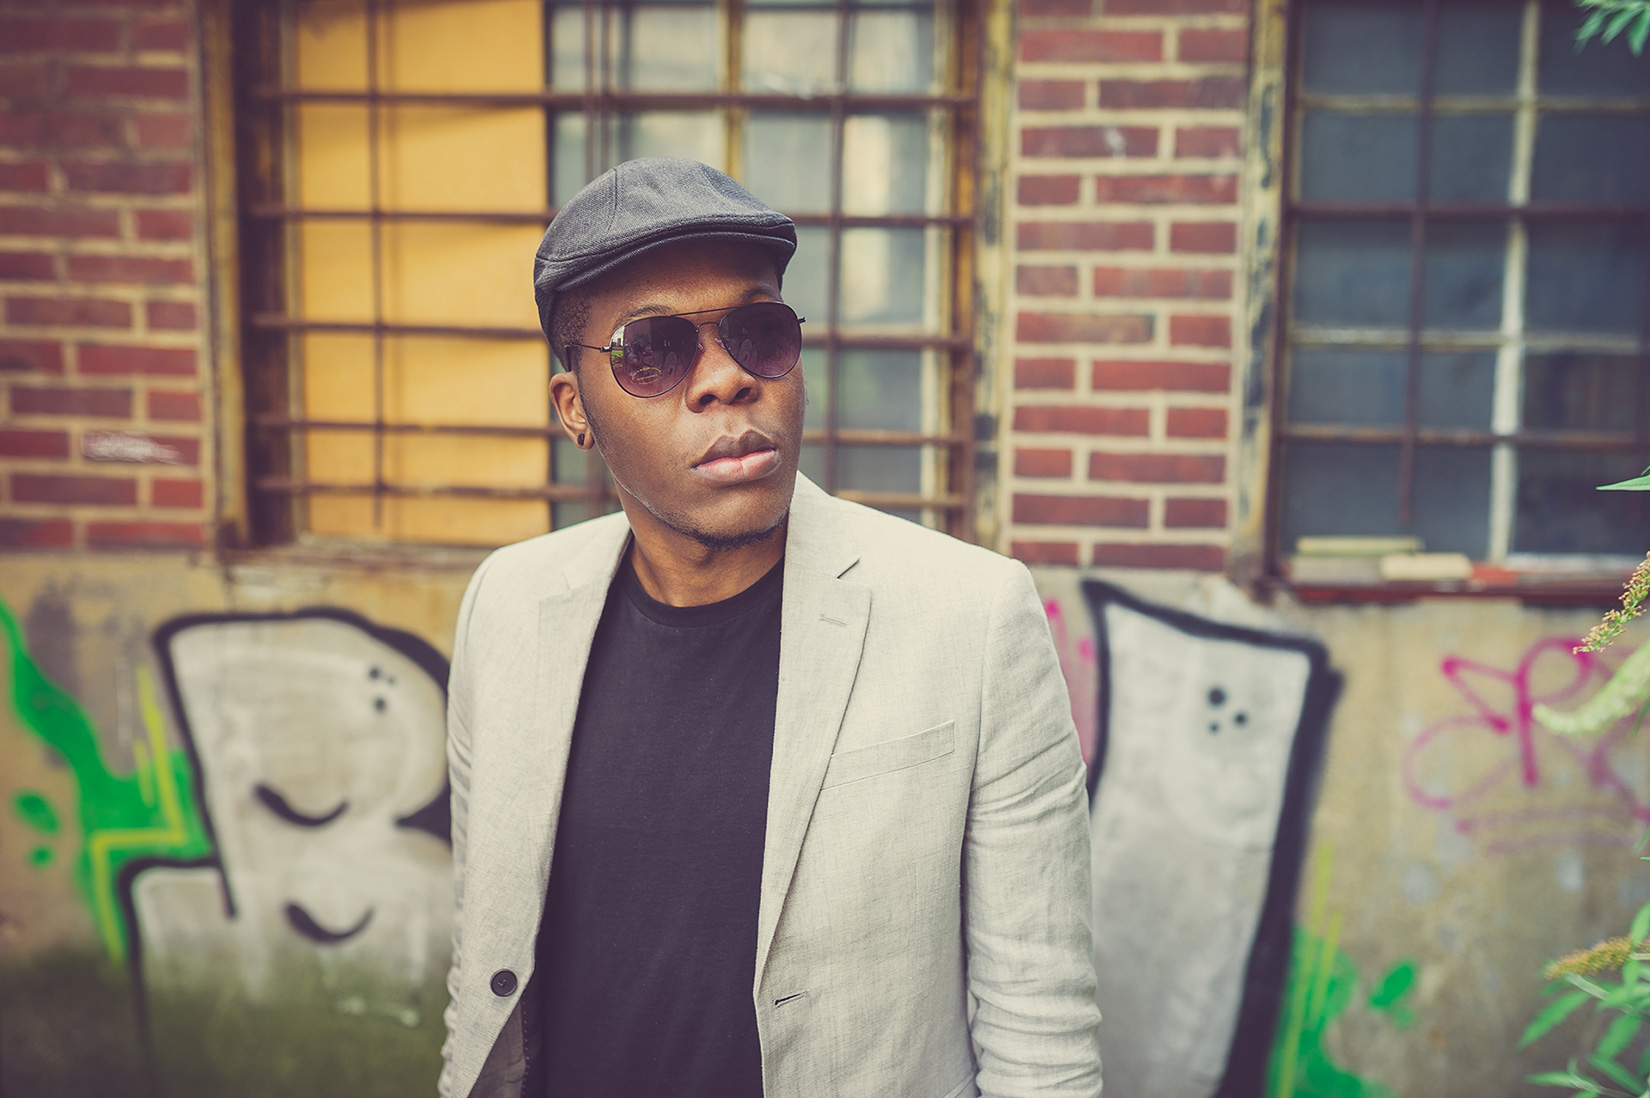 Billy im Jay-Z Look